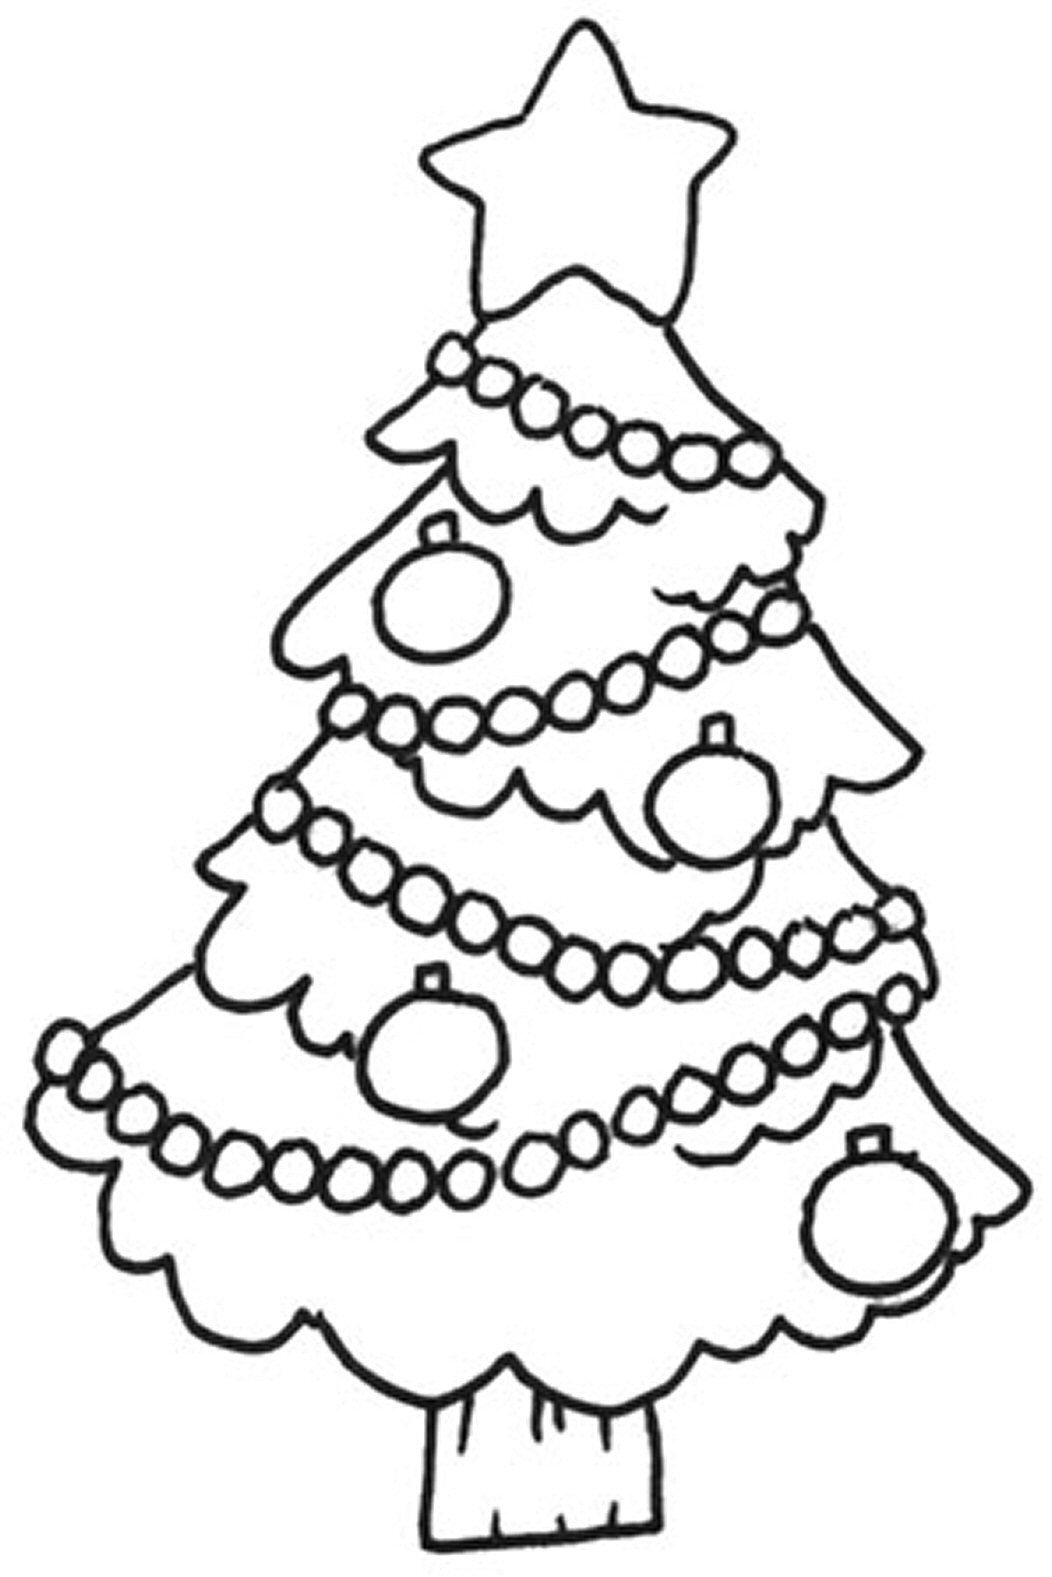 Holiday Coloring Pages For Kids  Free Printable Christmas Tree Coloring Pages For Kids